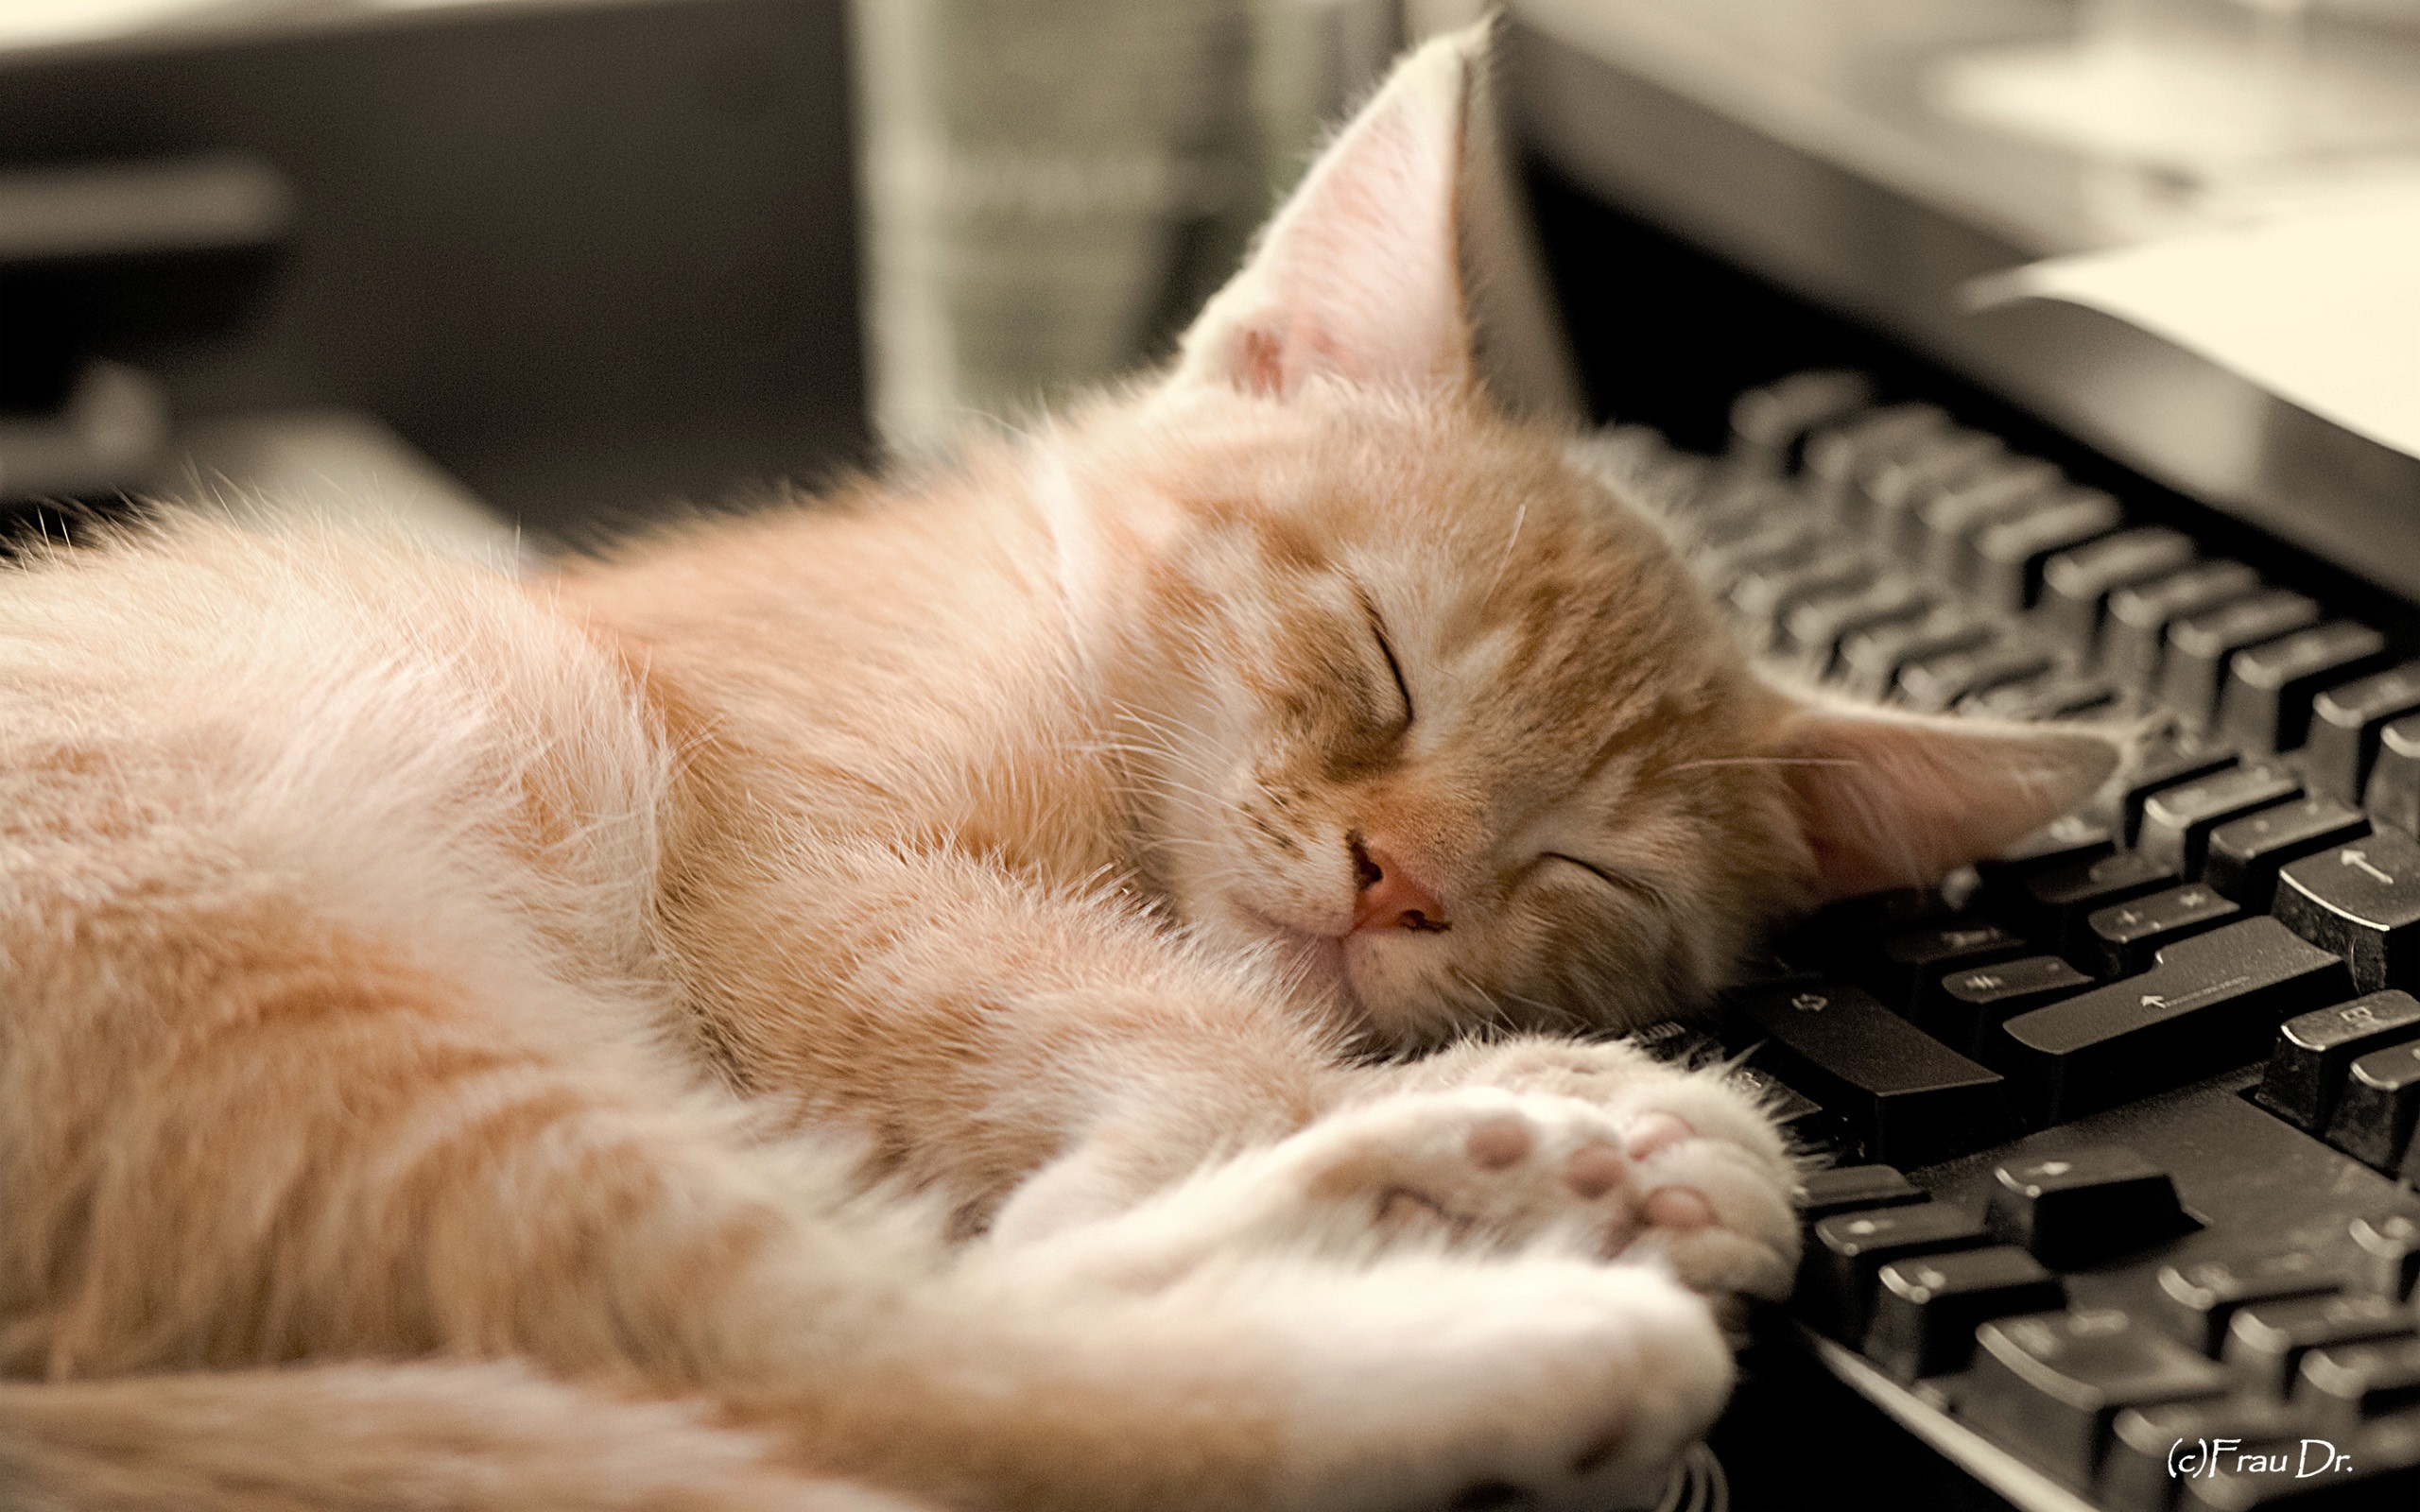 cats animals keyboards sleeping cat sleep keyboard